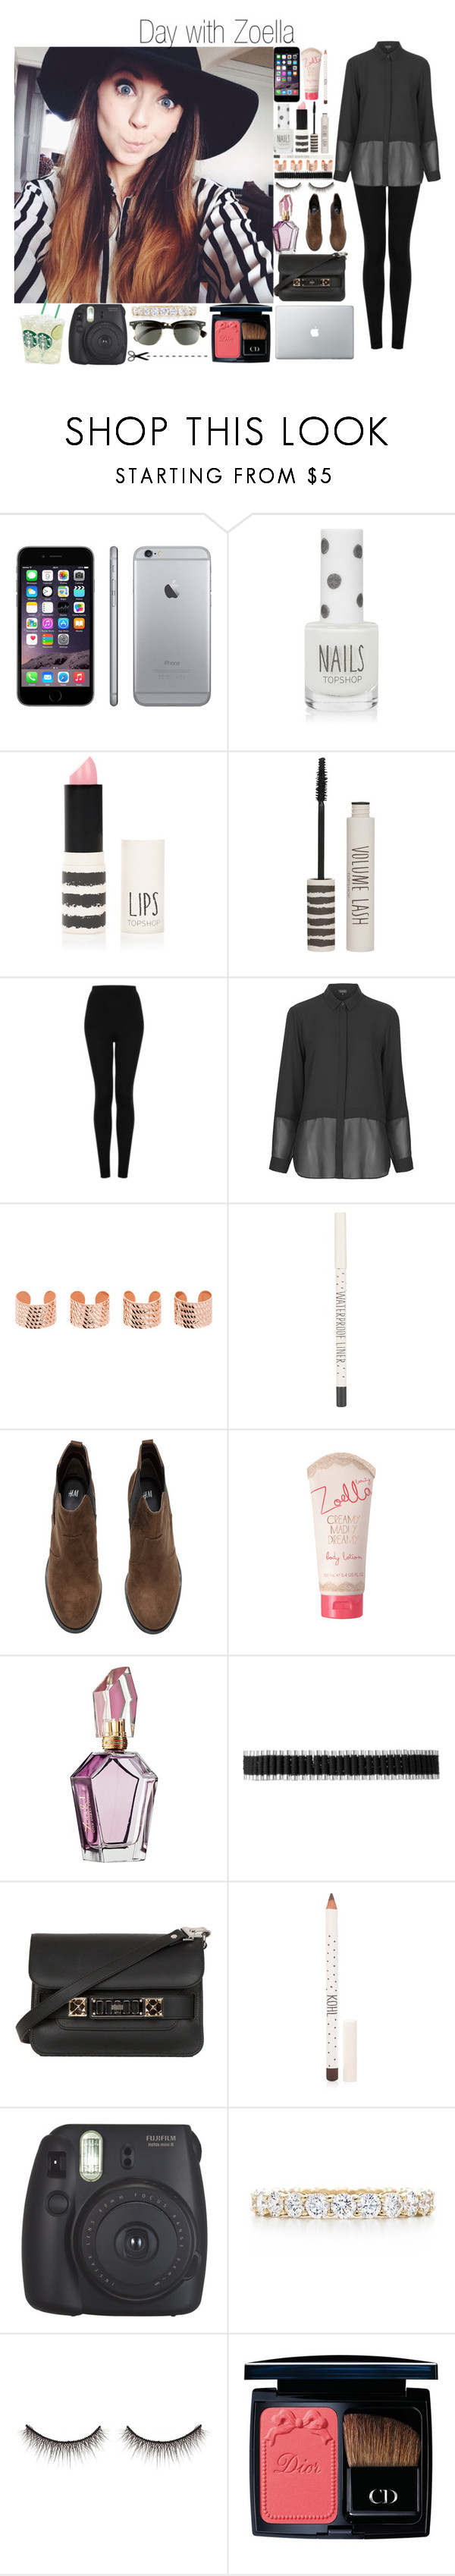 """""""Day with Zoella"""" by sarastyles-362 ❤ liked on Polyvore featuring Topshop, Maison Margiela, H&M, Links of London, Proenza Schouler, Fujifilm, Tiffany & Co., shu uemura, Trianon and Ray-Ban"""